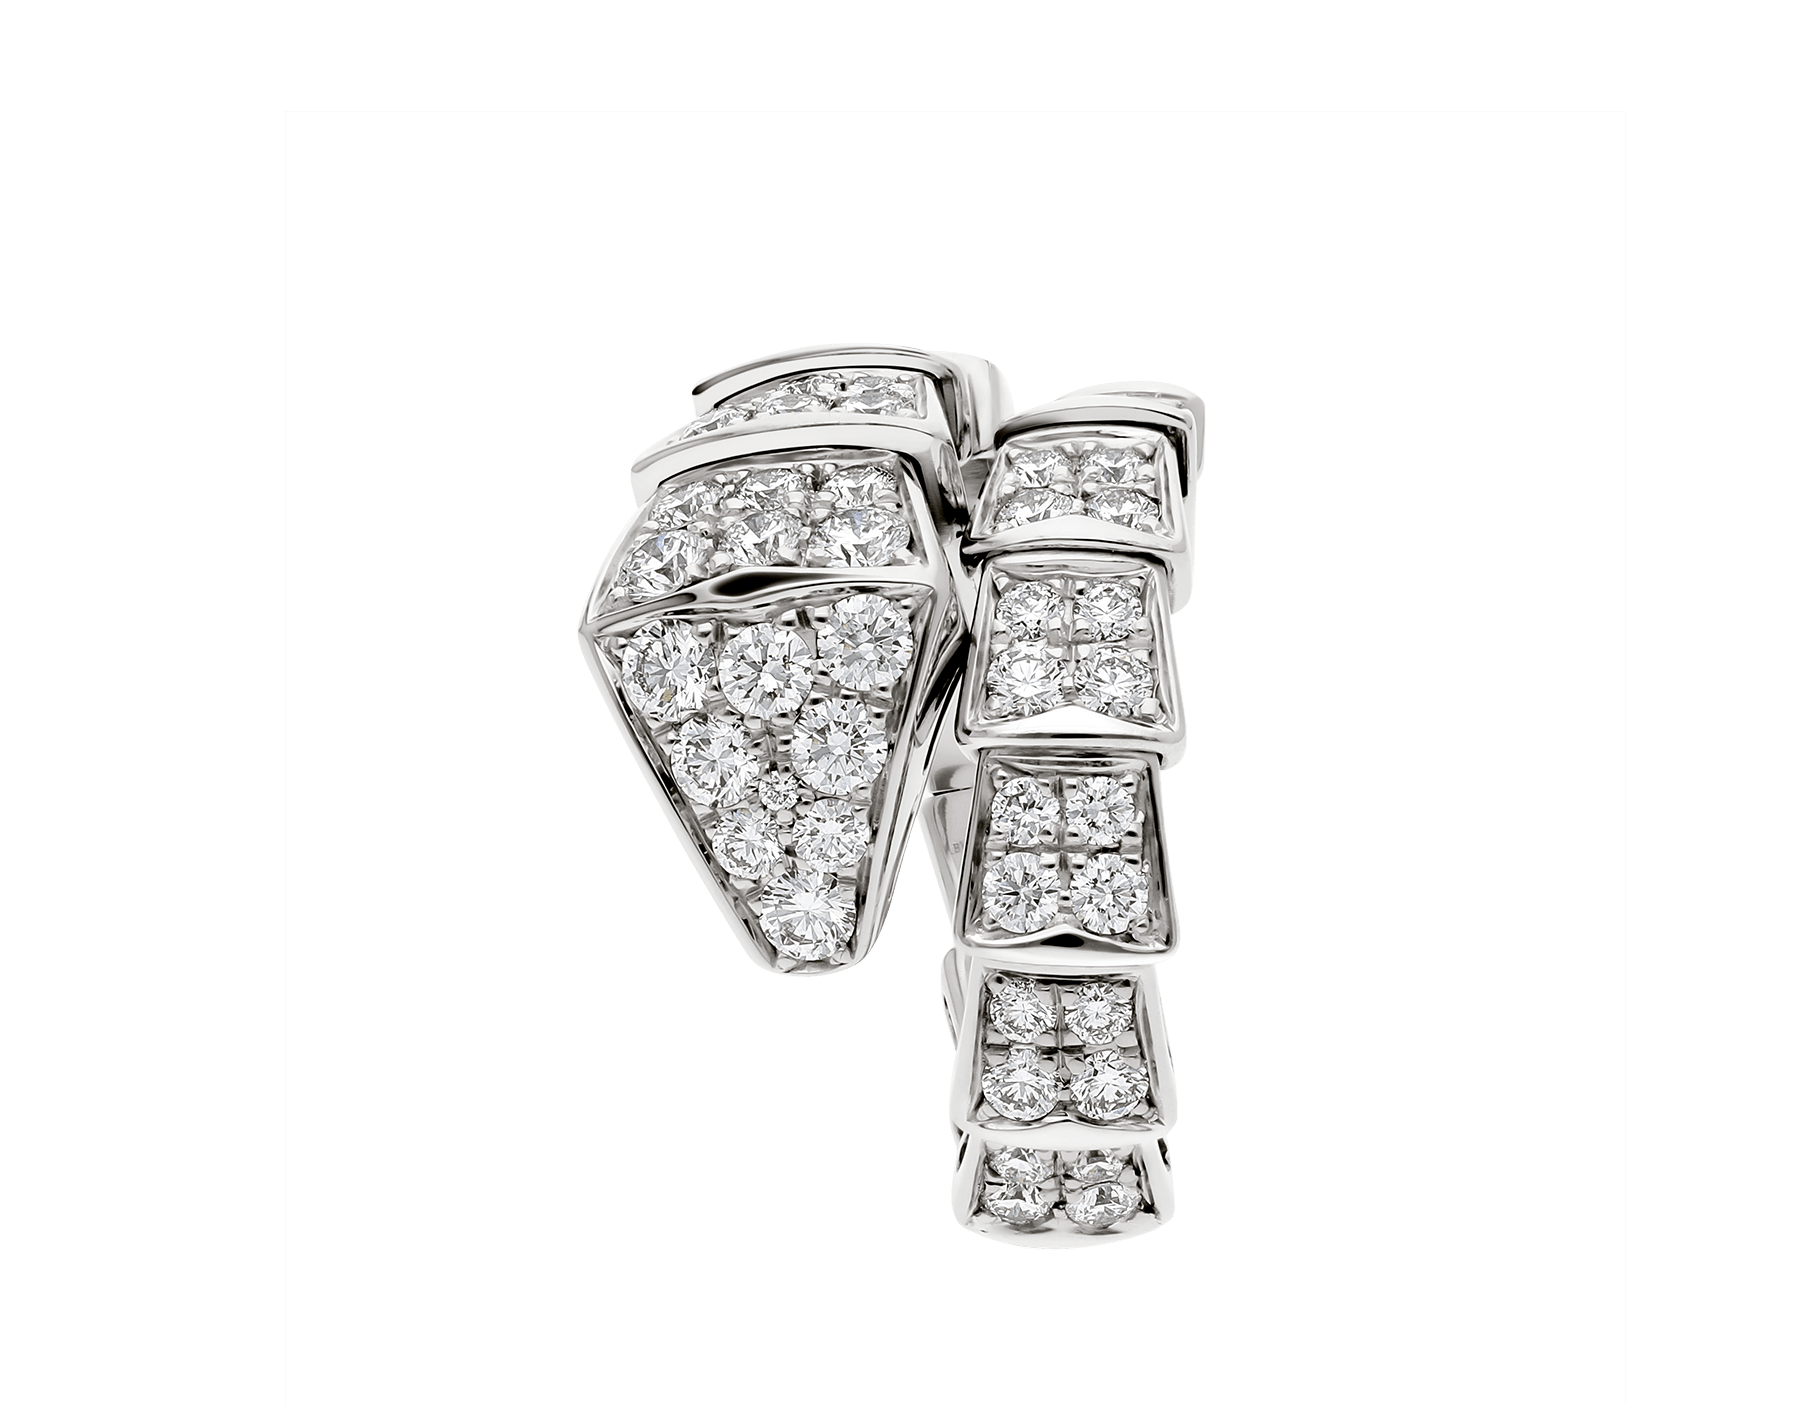 Serpenti Viper one-coil ring in 18 kt white gold, set with full pavé diamonds. AN855116 image 4